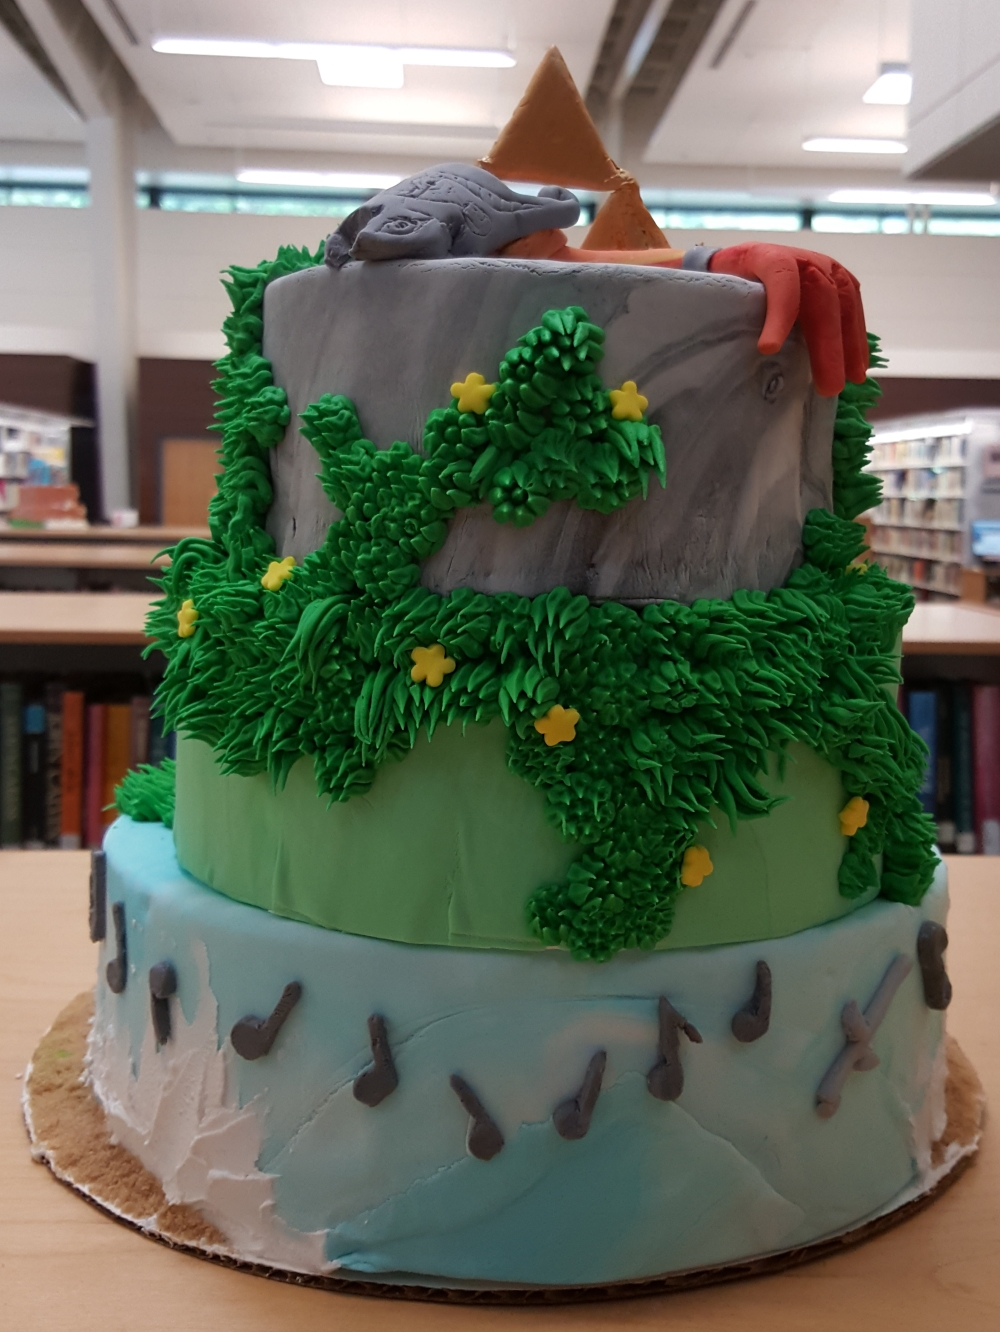 2019 Cakes Nature - back view